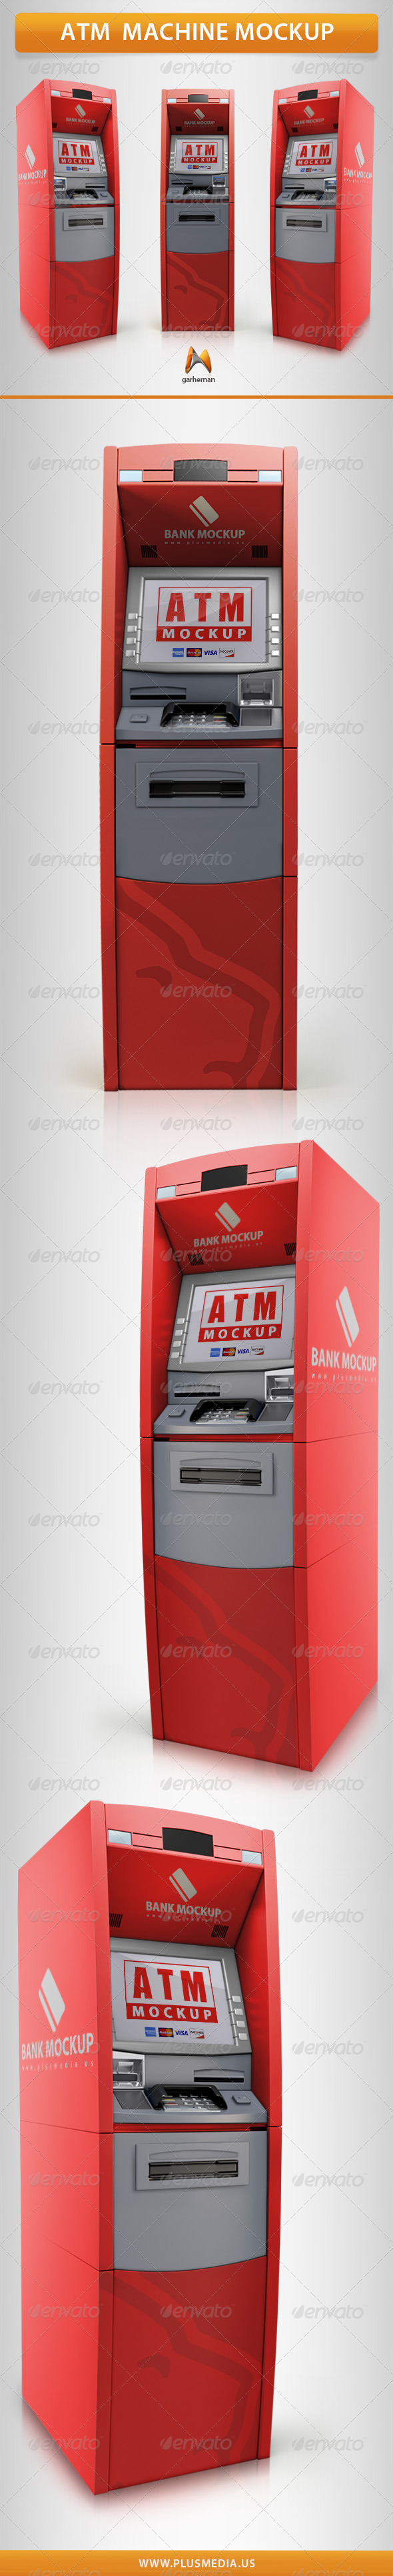 ATM Machine Mockup - Product Mock-Ups Graphics